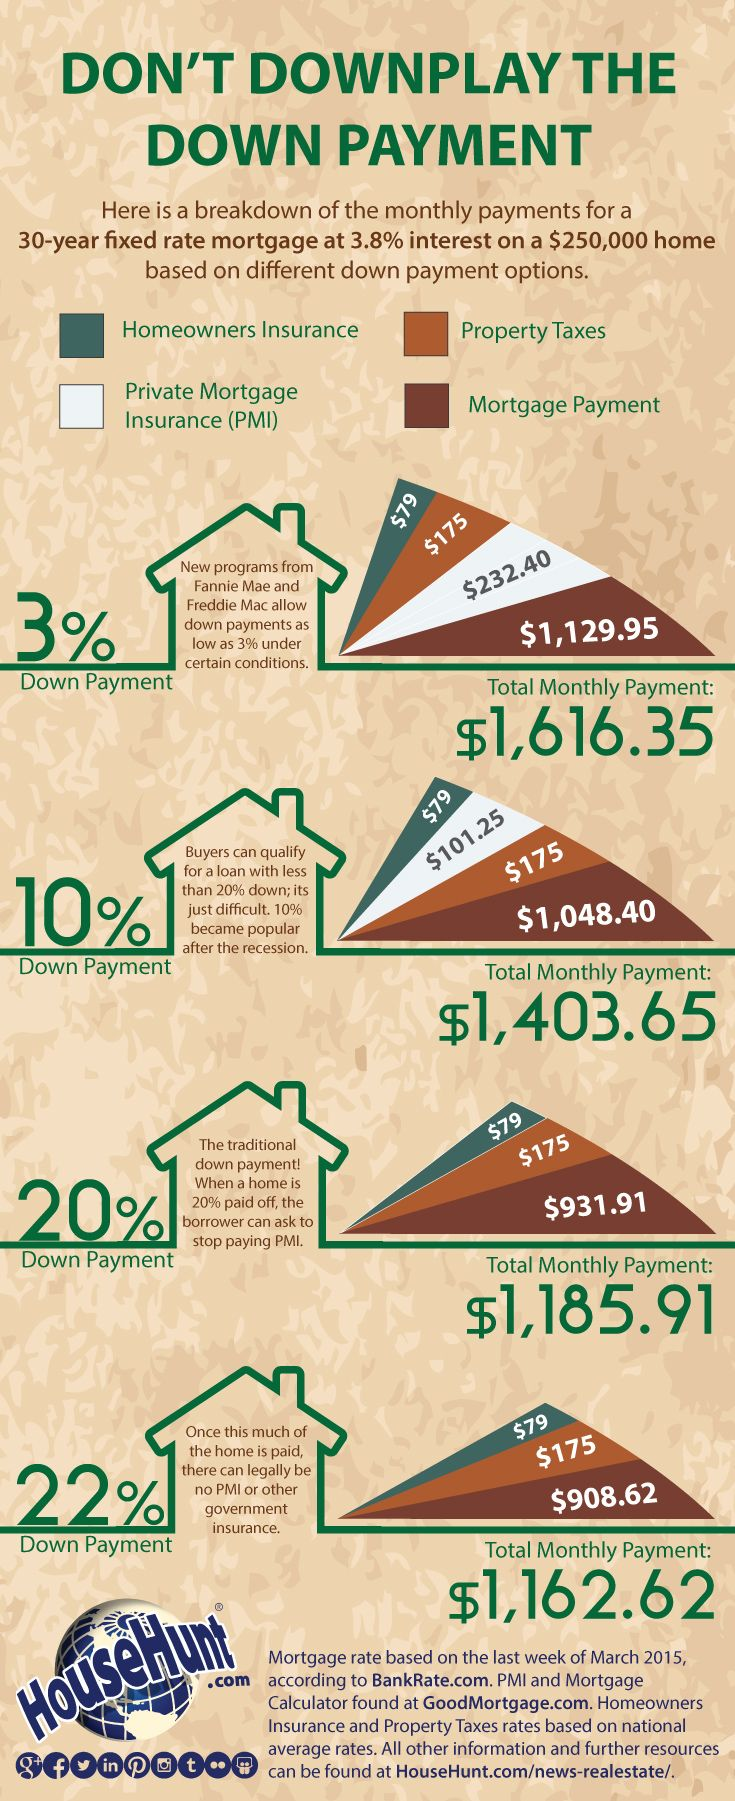 Don't Downplay the Down Payment [Infographic]